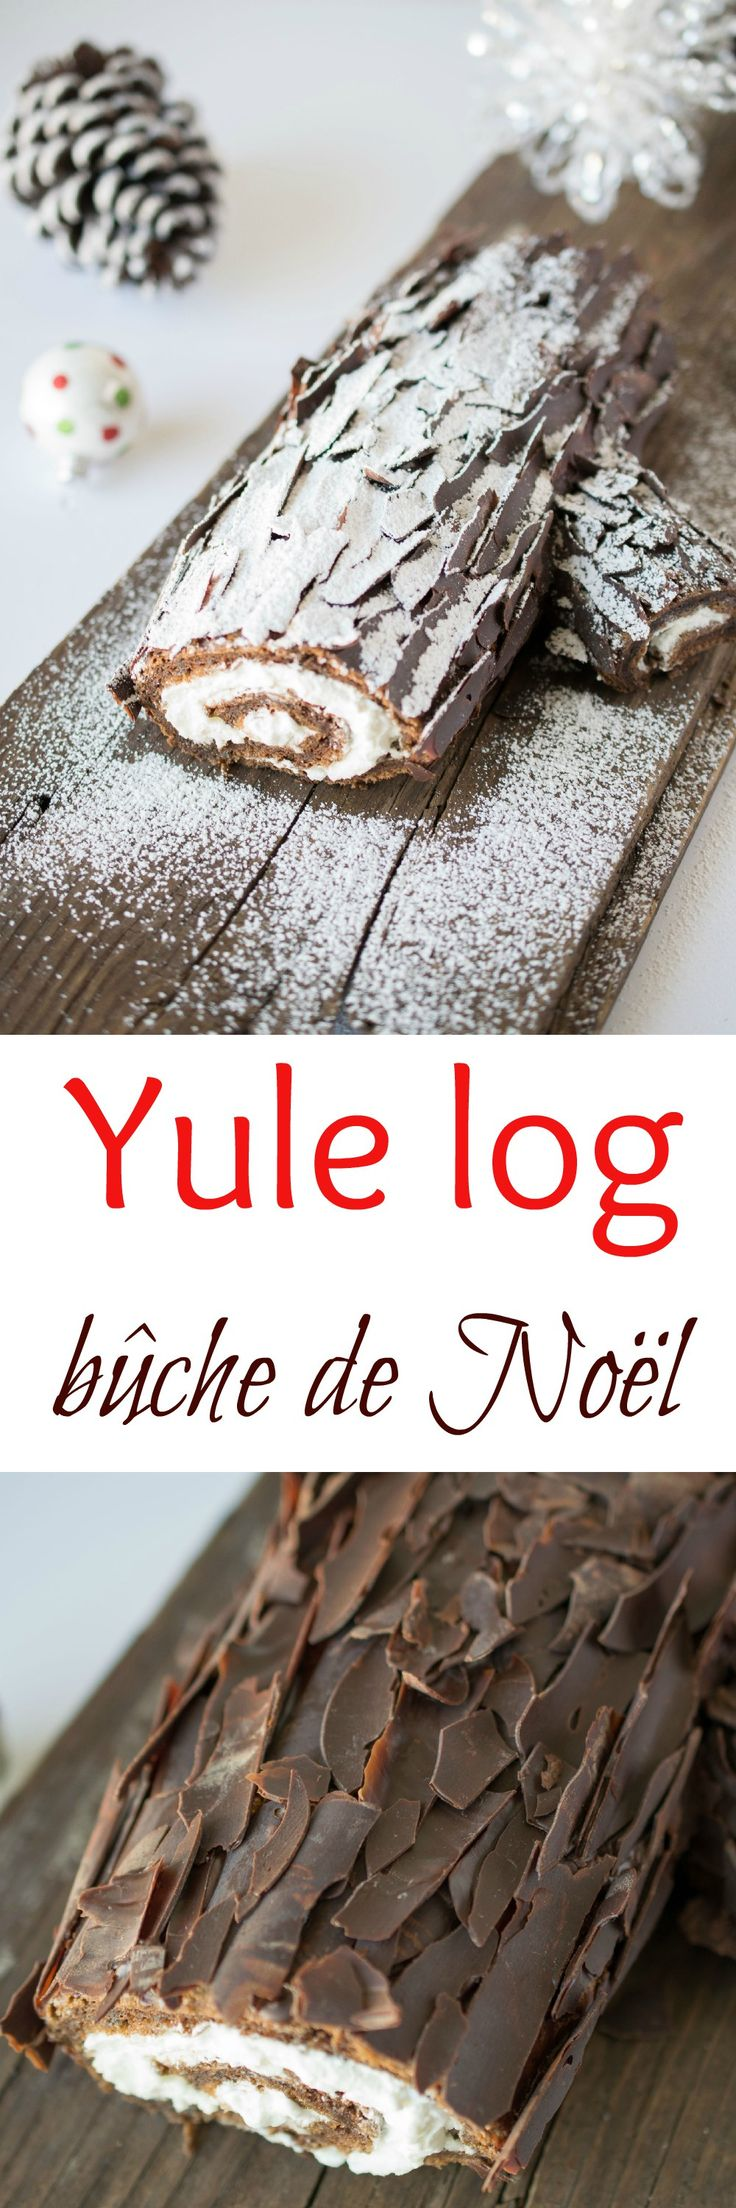 The Yule log, (also known as a bûche de Noël in France and French Canada) is a traditional Christmas dessert served around the holiday. Chocolate cake with whipped cream frosting and decorated with chocolate bar